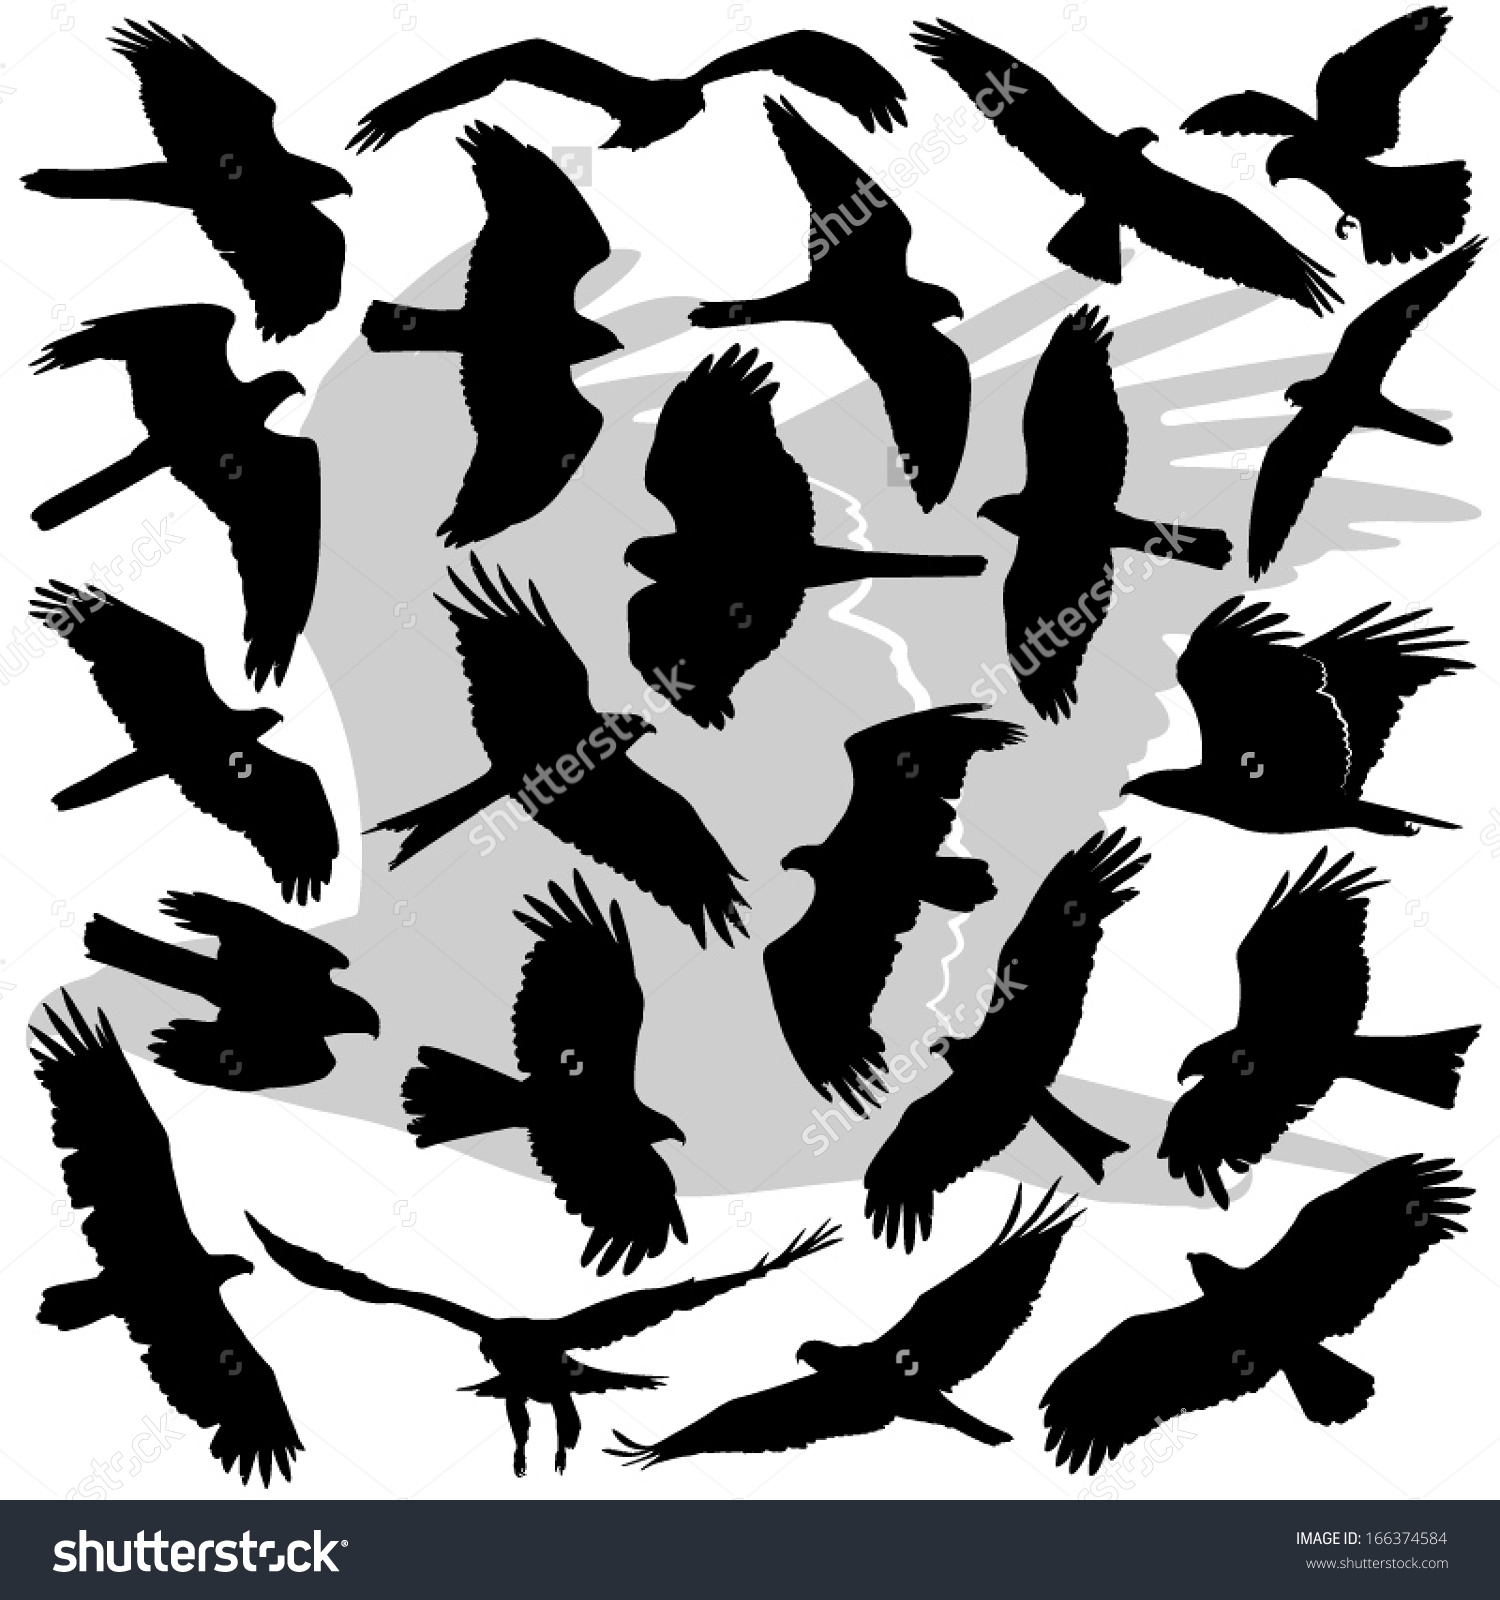 Vector Illustrations Set High Detail Silhouettes Stock Vector.